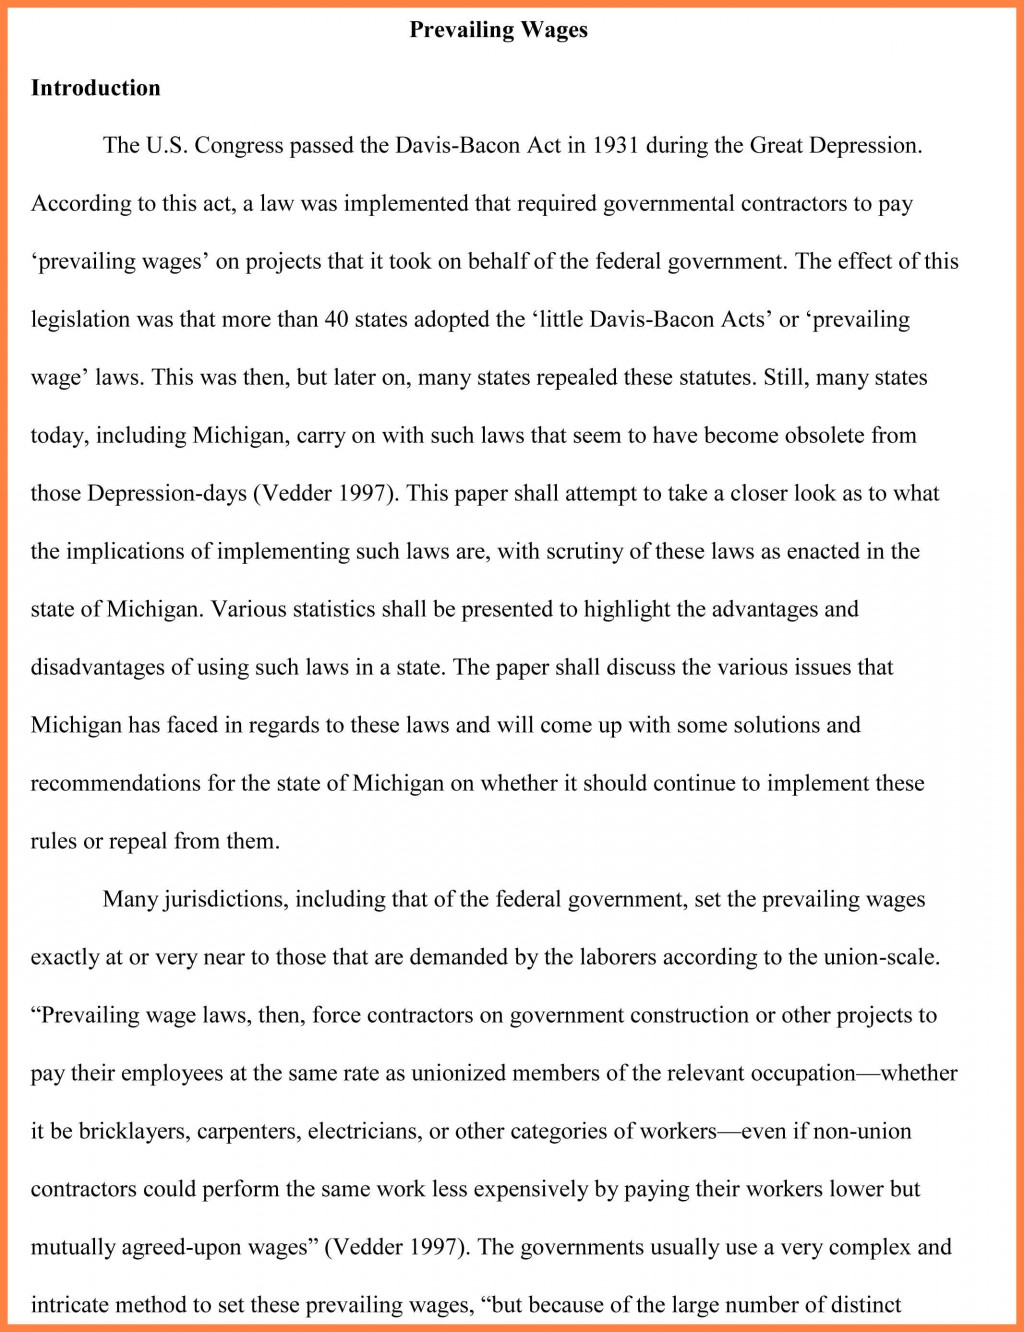 017 Research Paper College Essay Template Colledgepa Format Sample Example For Shocking Apa A 6th Edition 2015 Citation Large